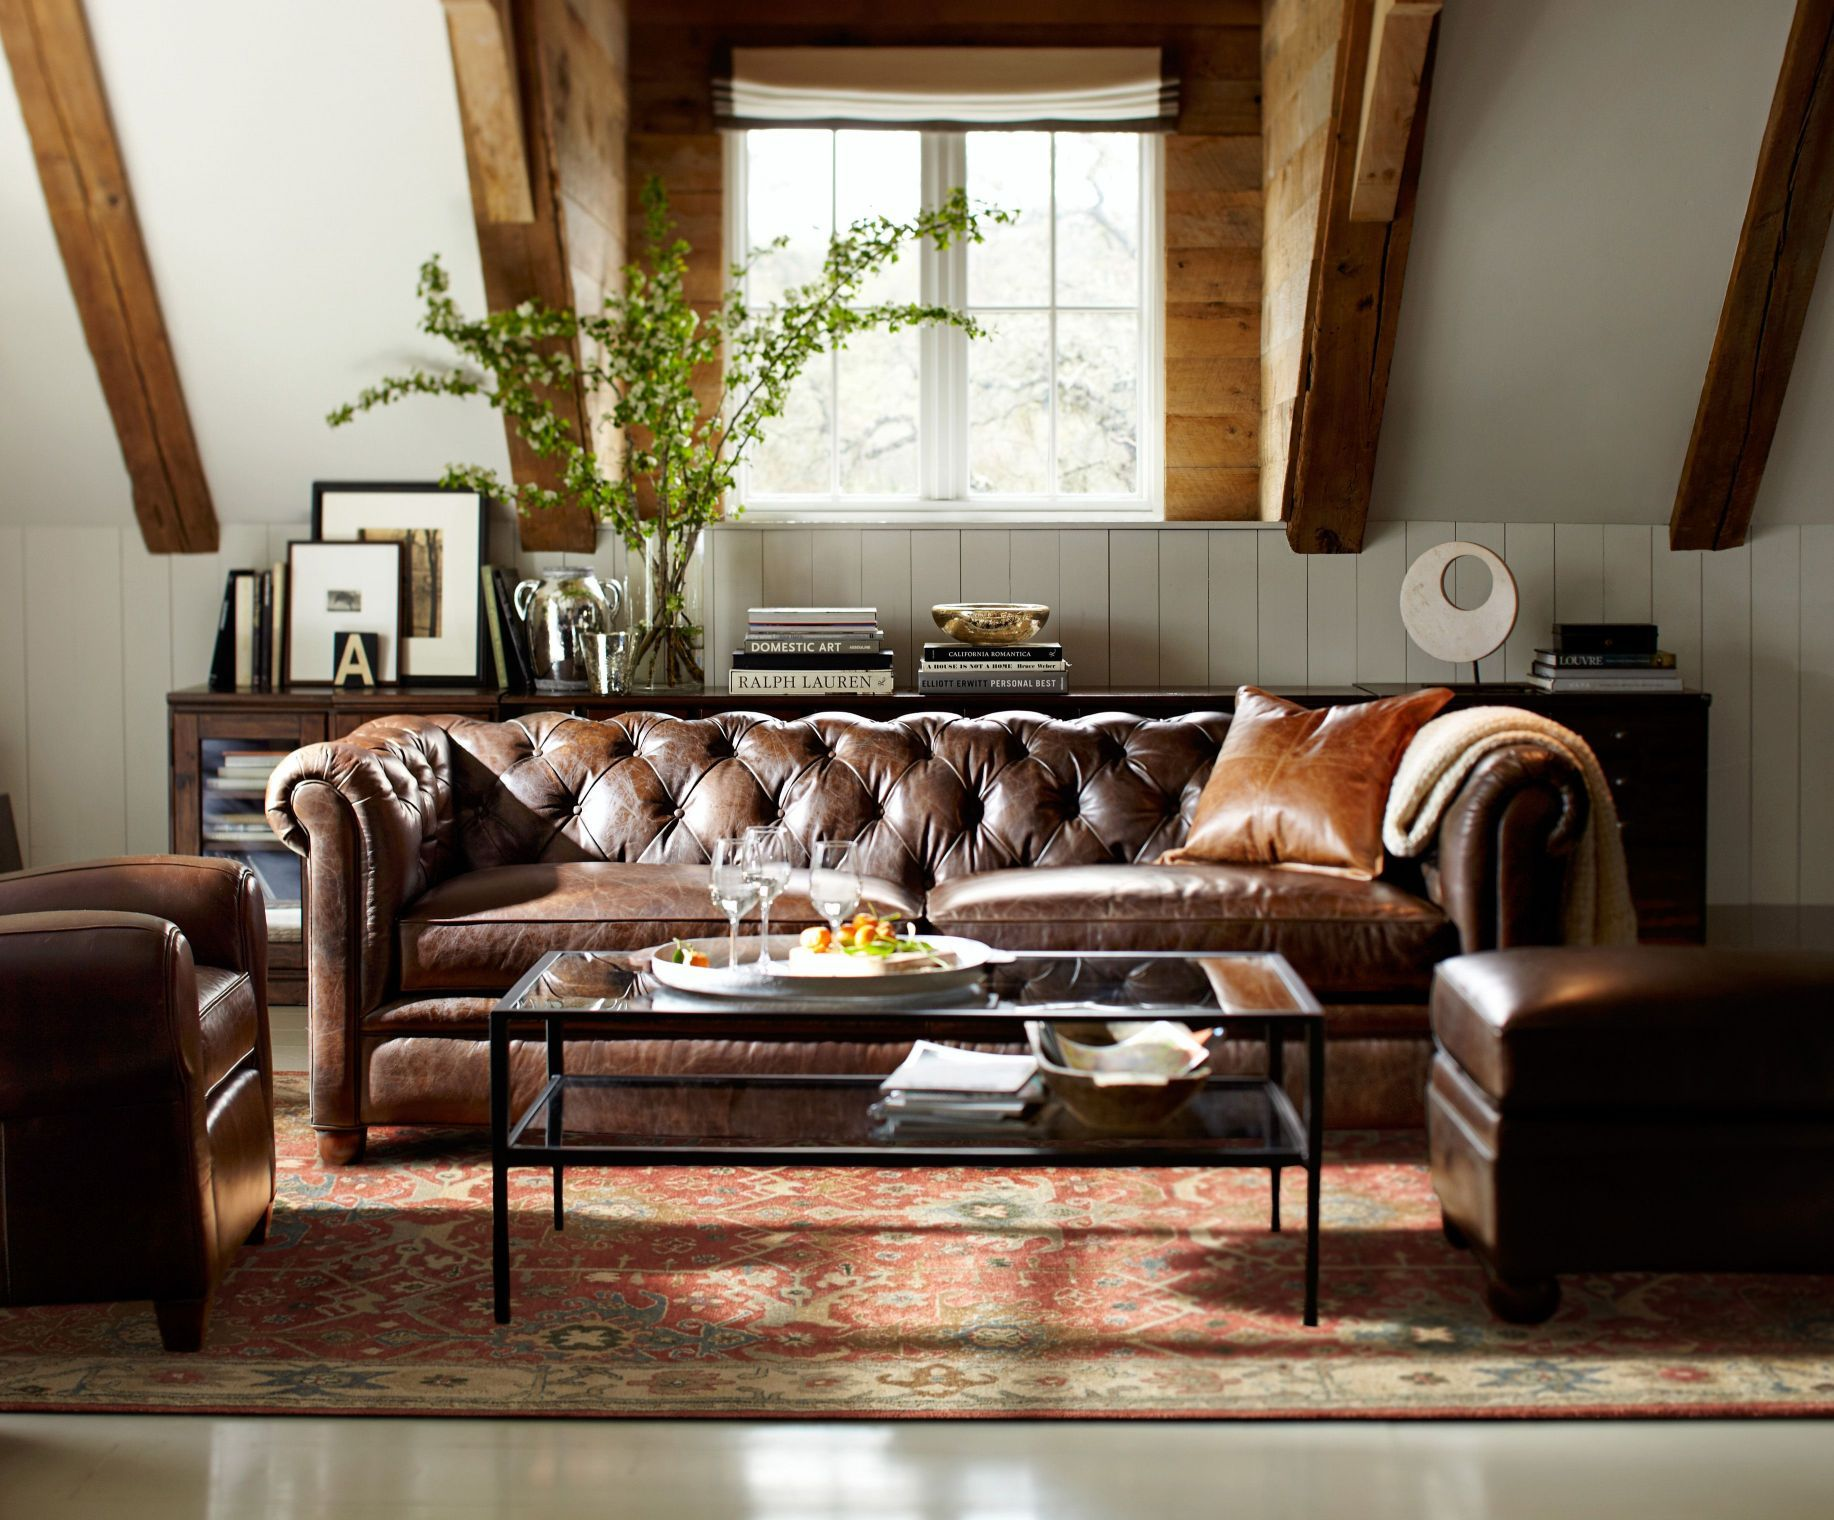 Chesterfield Sofa In Living Room